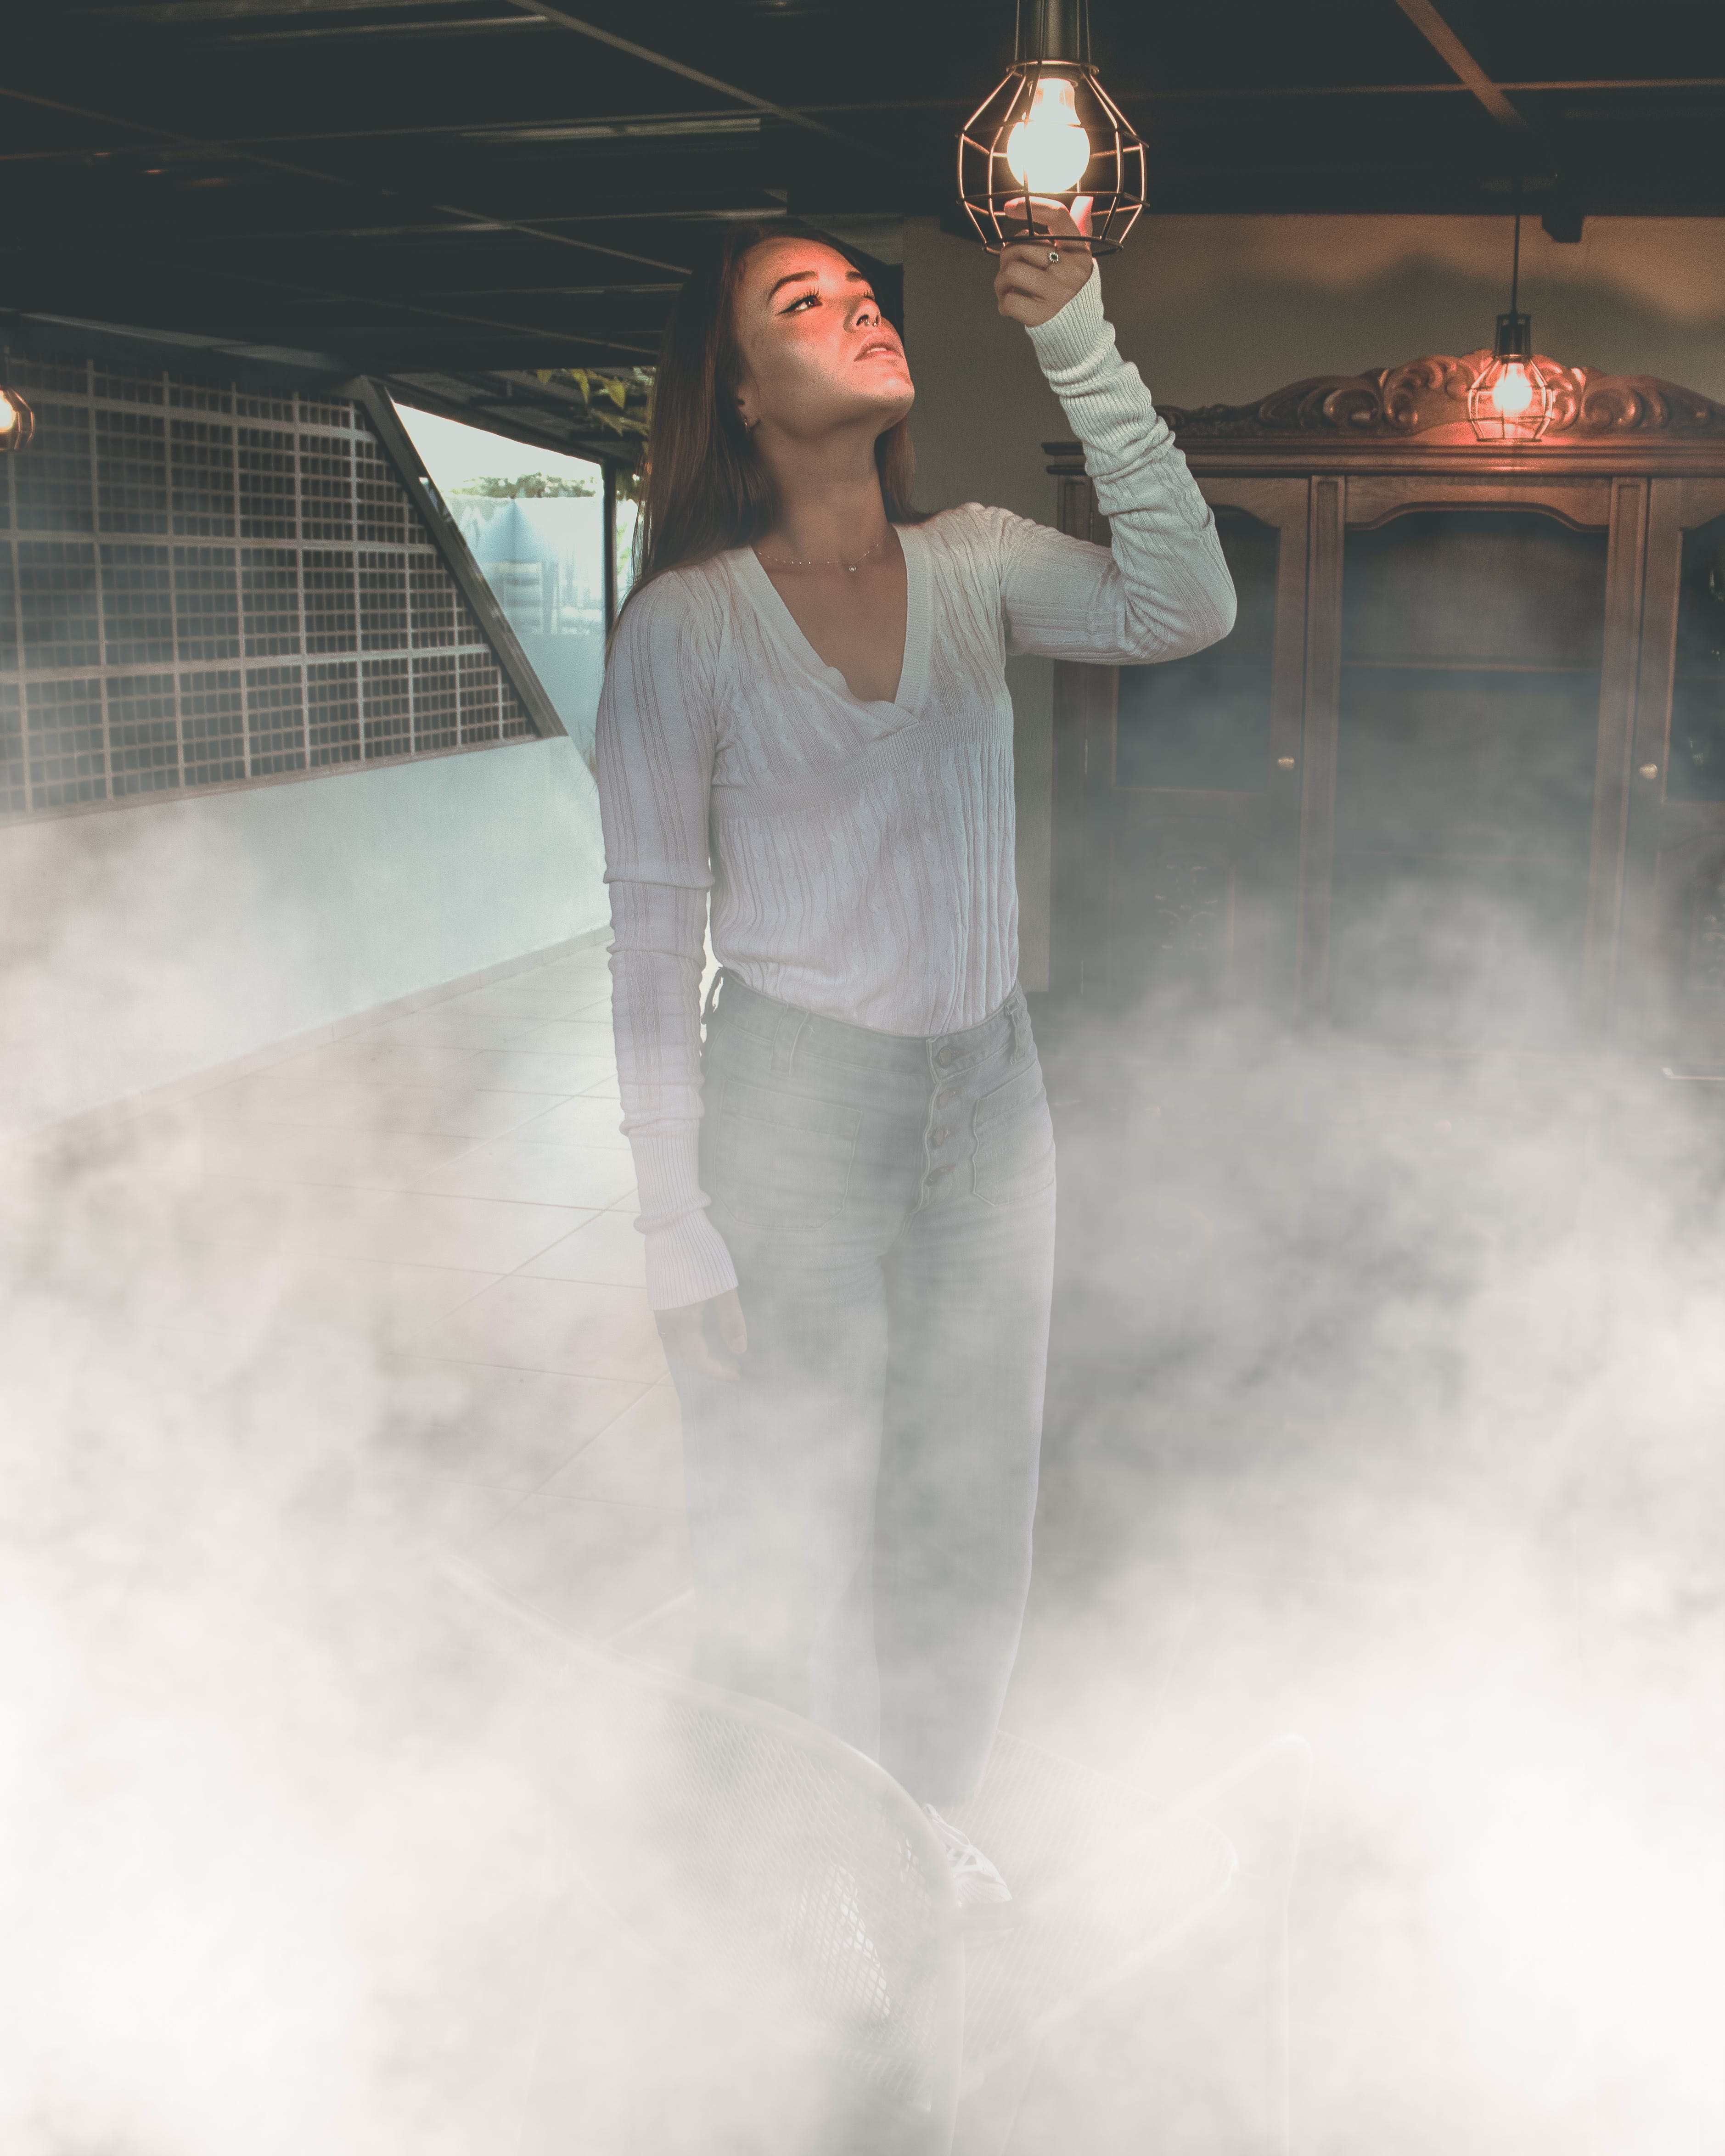 Woman Standing Inside Smoky Room and Holding Turned on Hanging Light Bulb